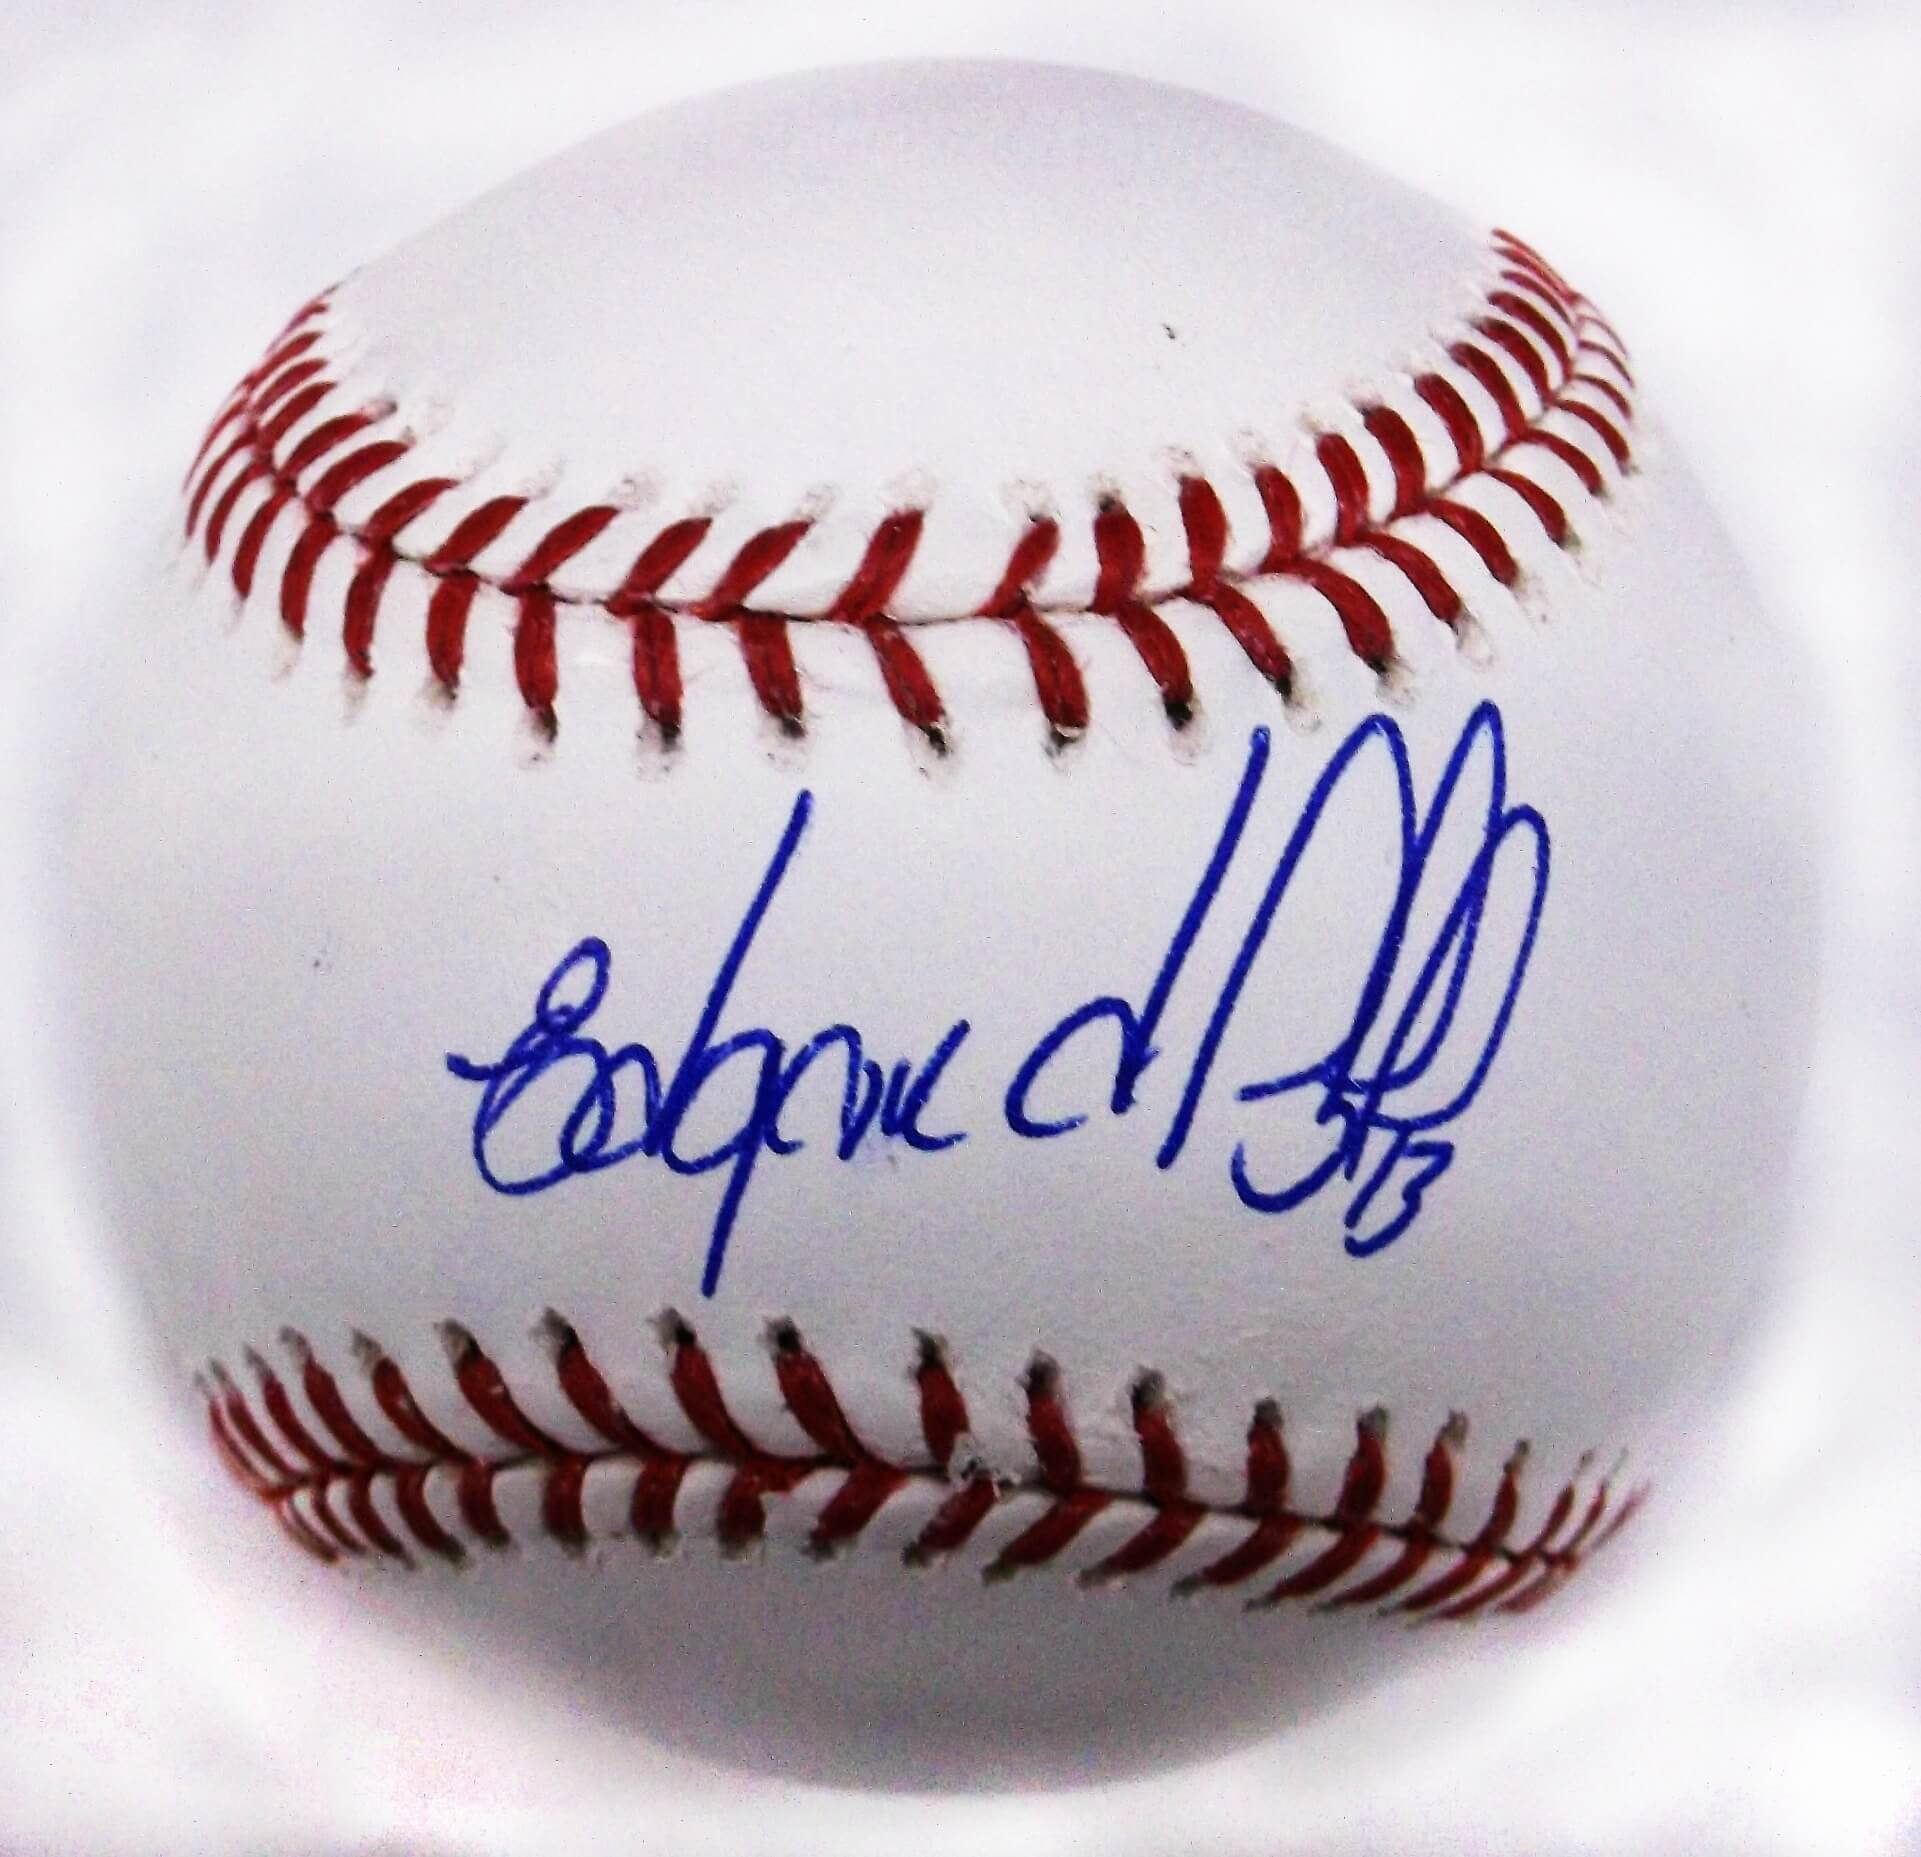 New York Mets Edgardo Alfonzo Signed Rawlings Official Game Ball